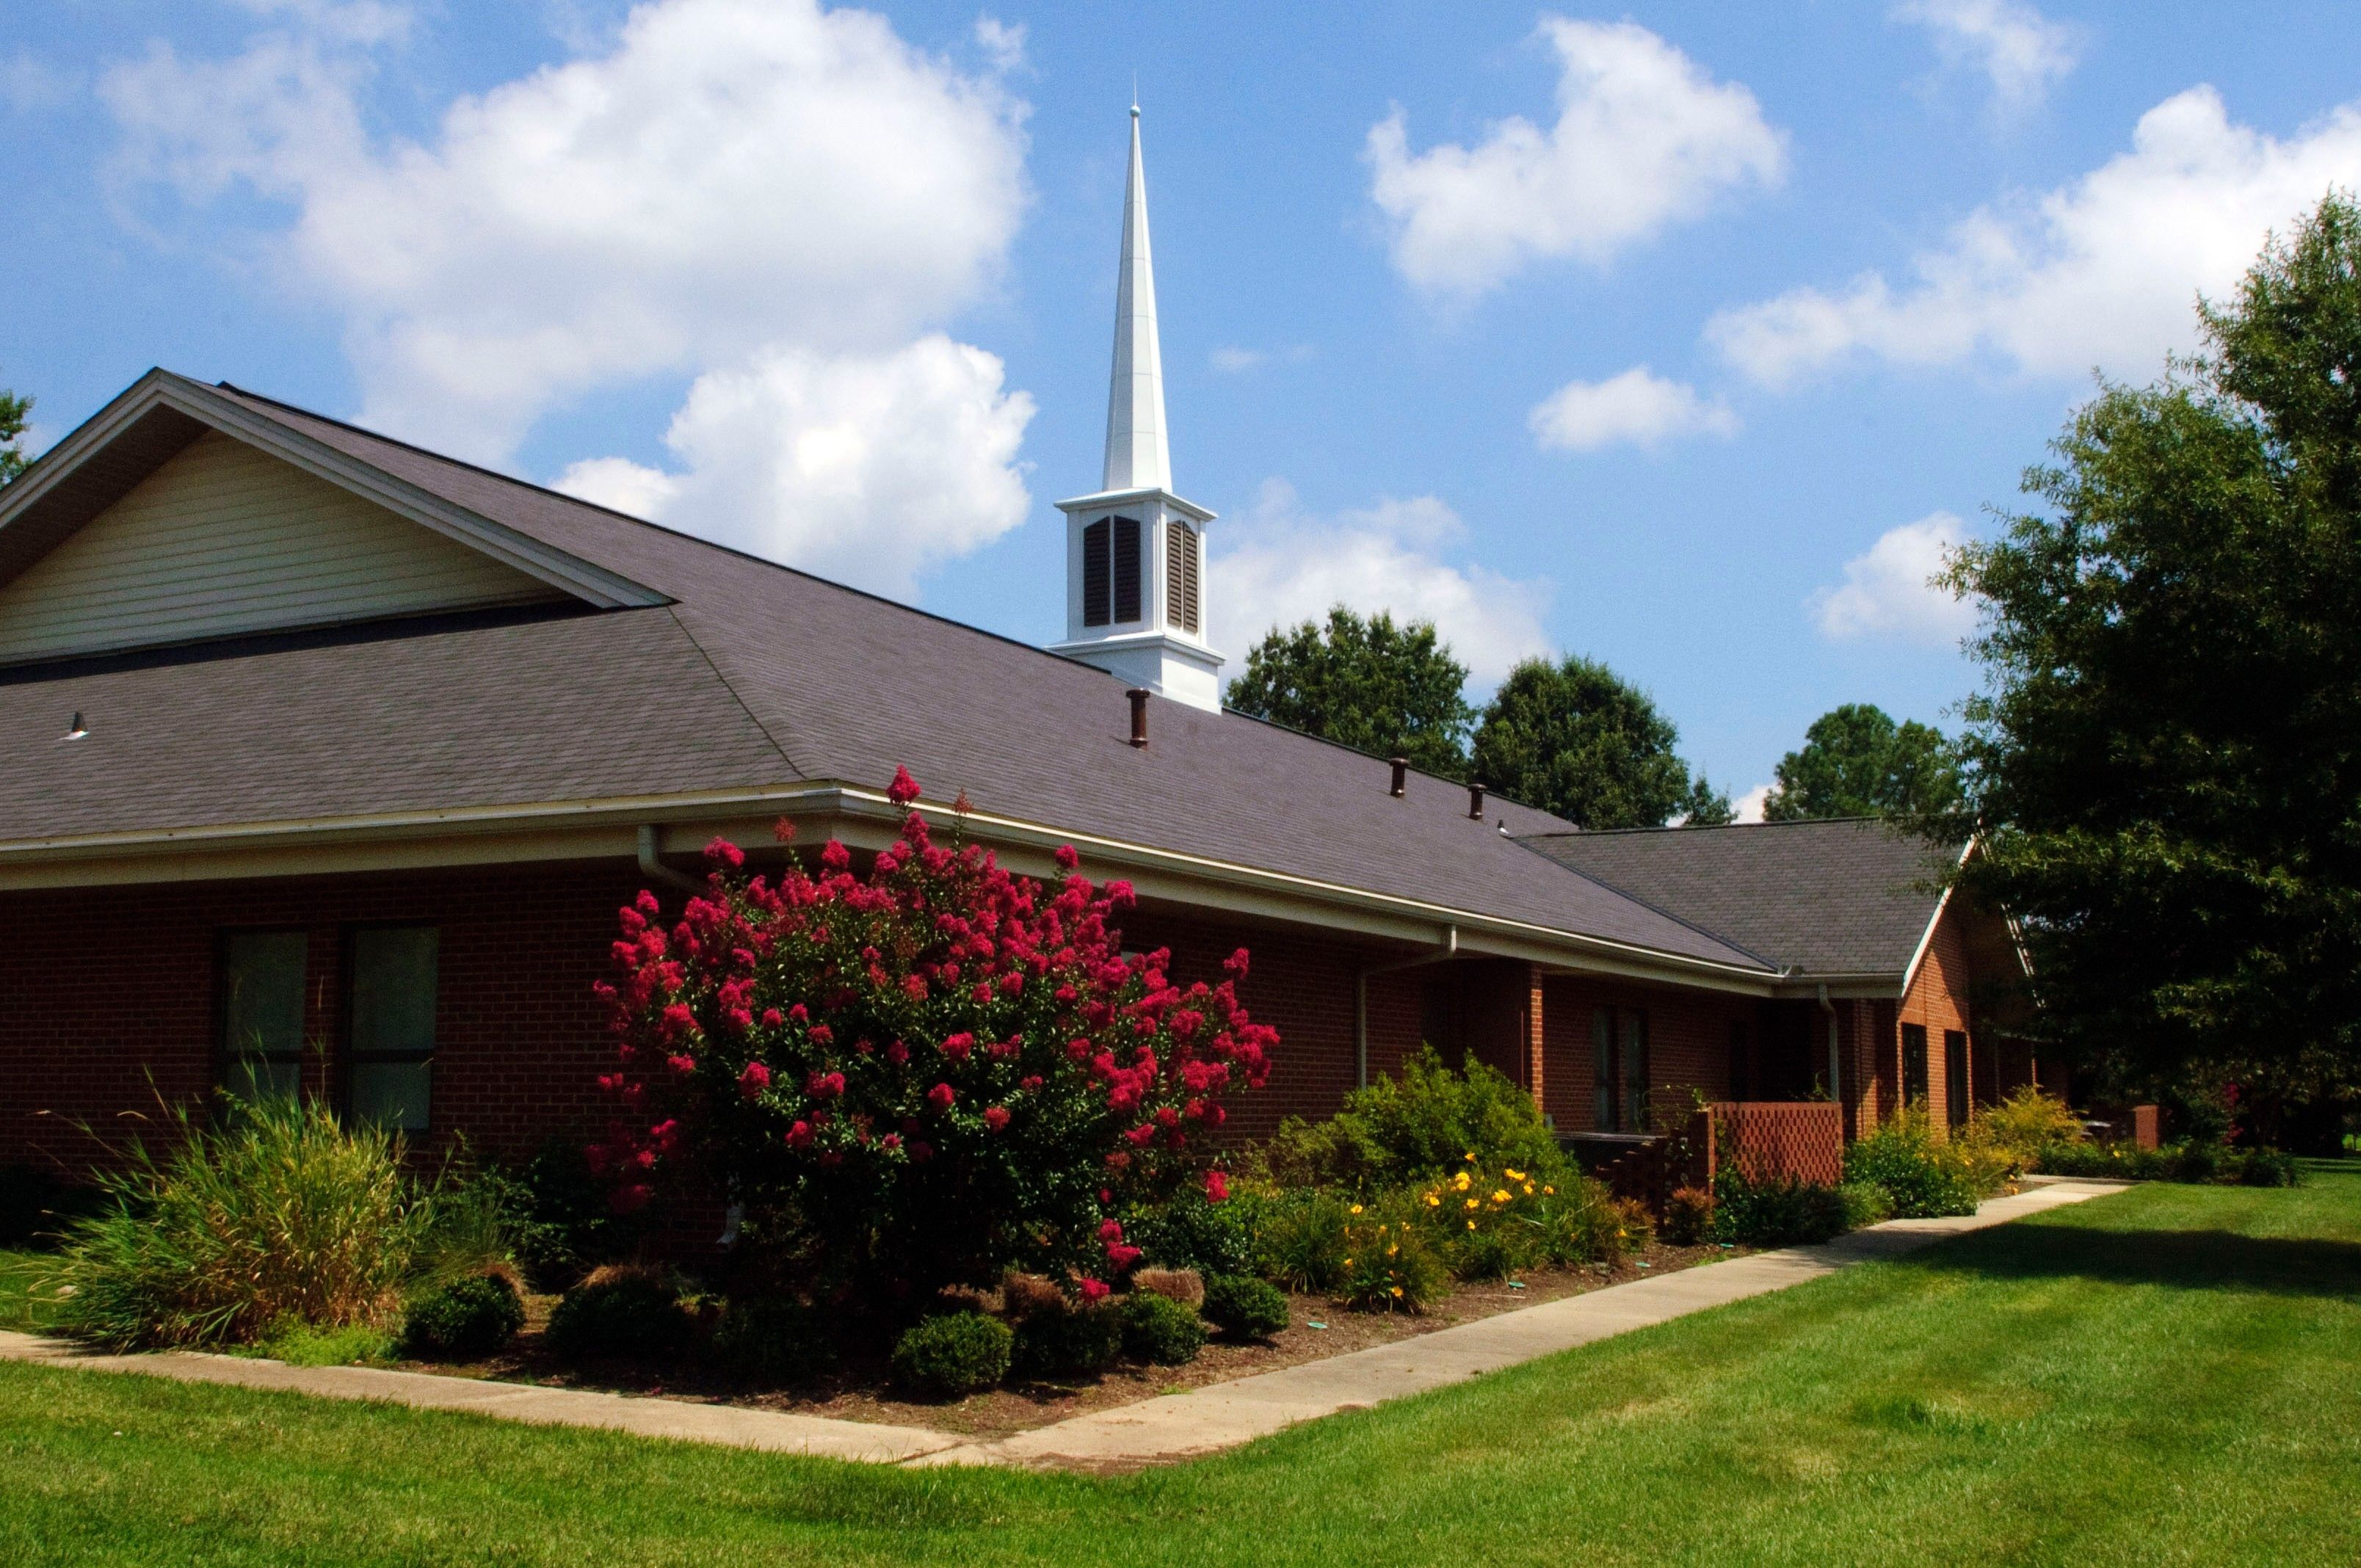 A side angle of a meetinghouse with a steeple surrounded by a grass lawn.